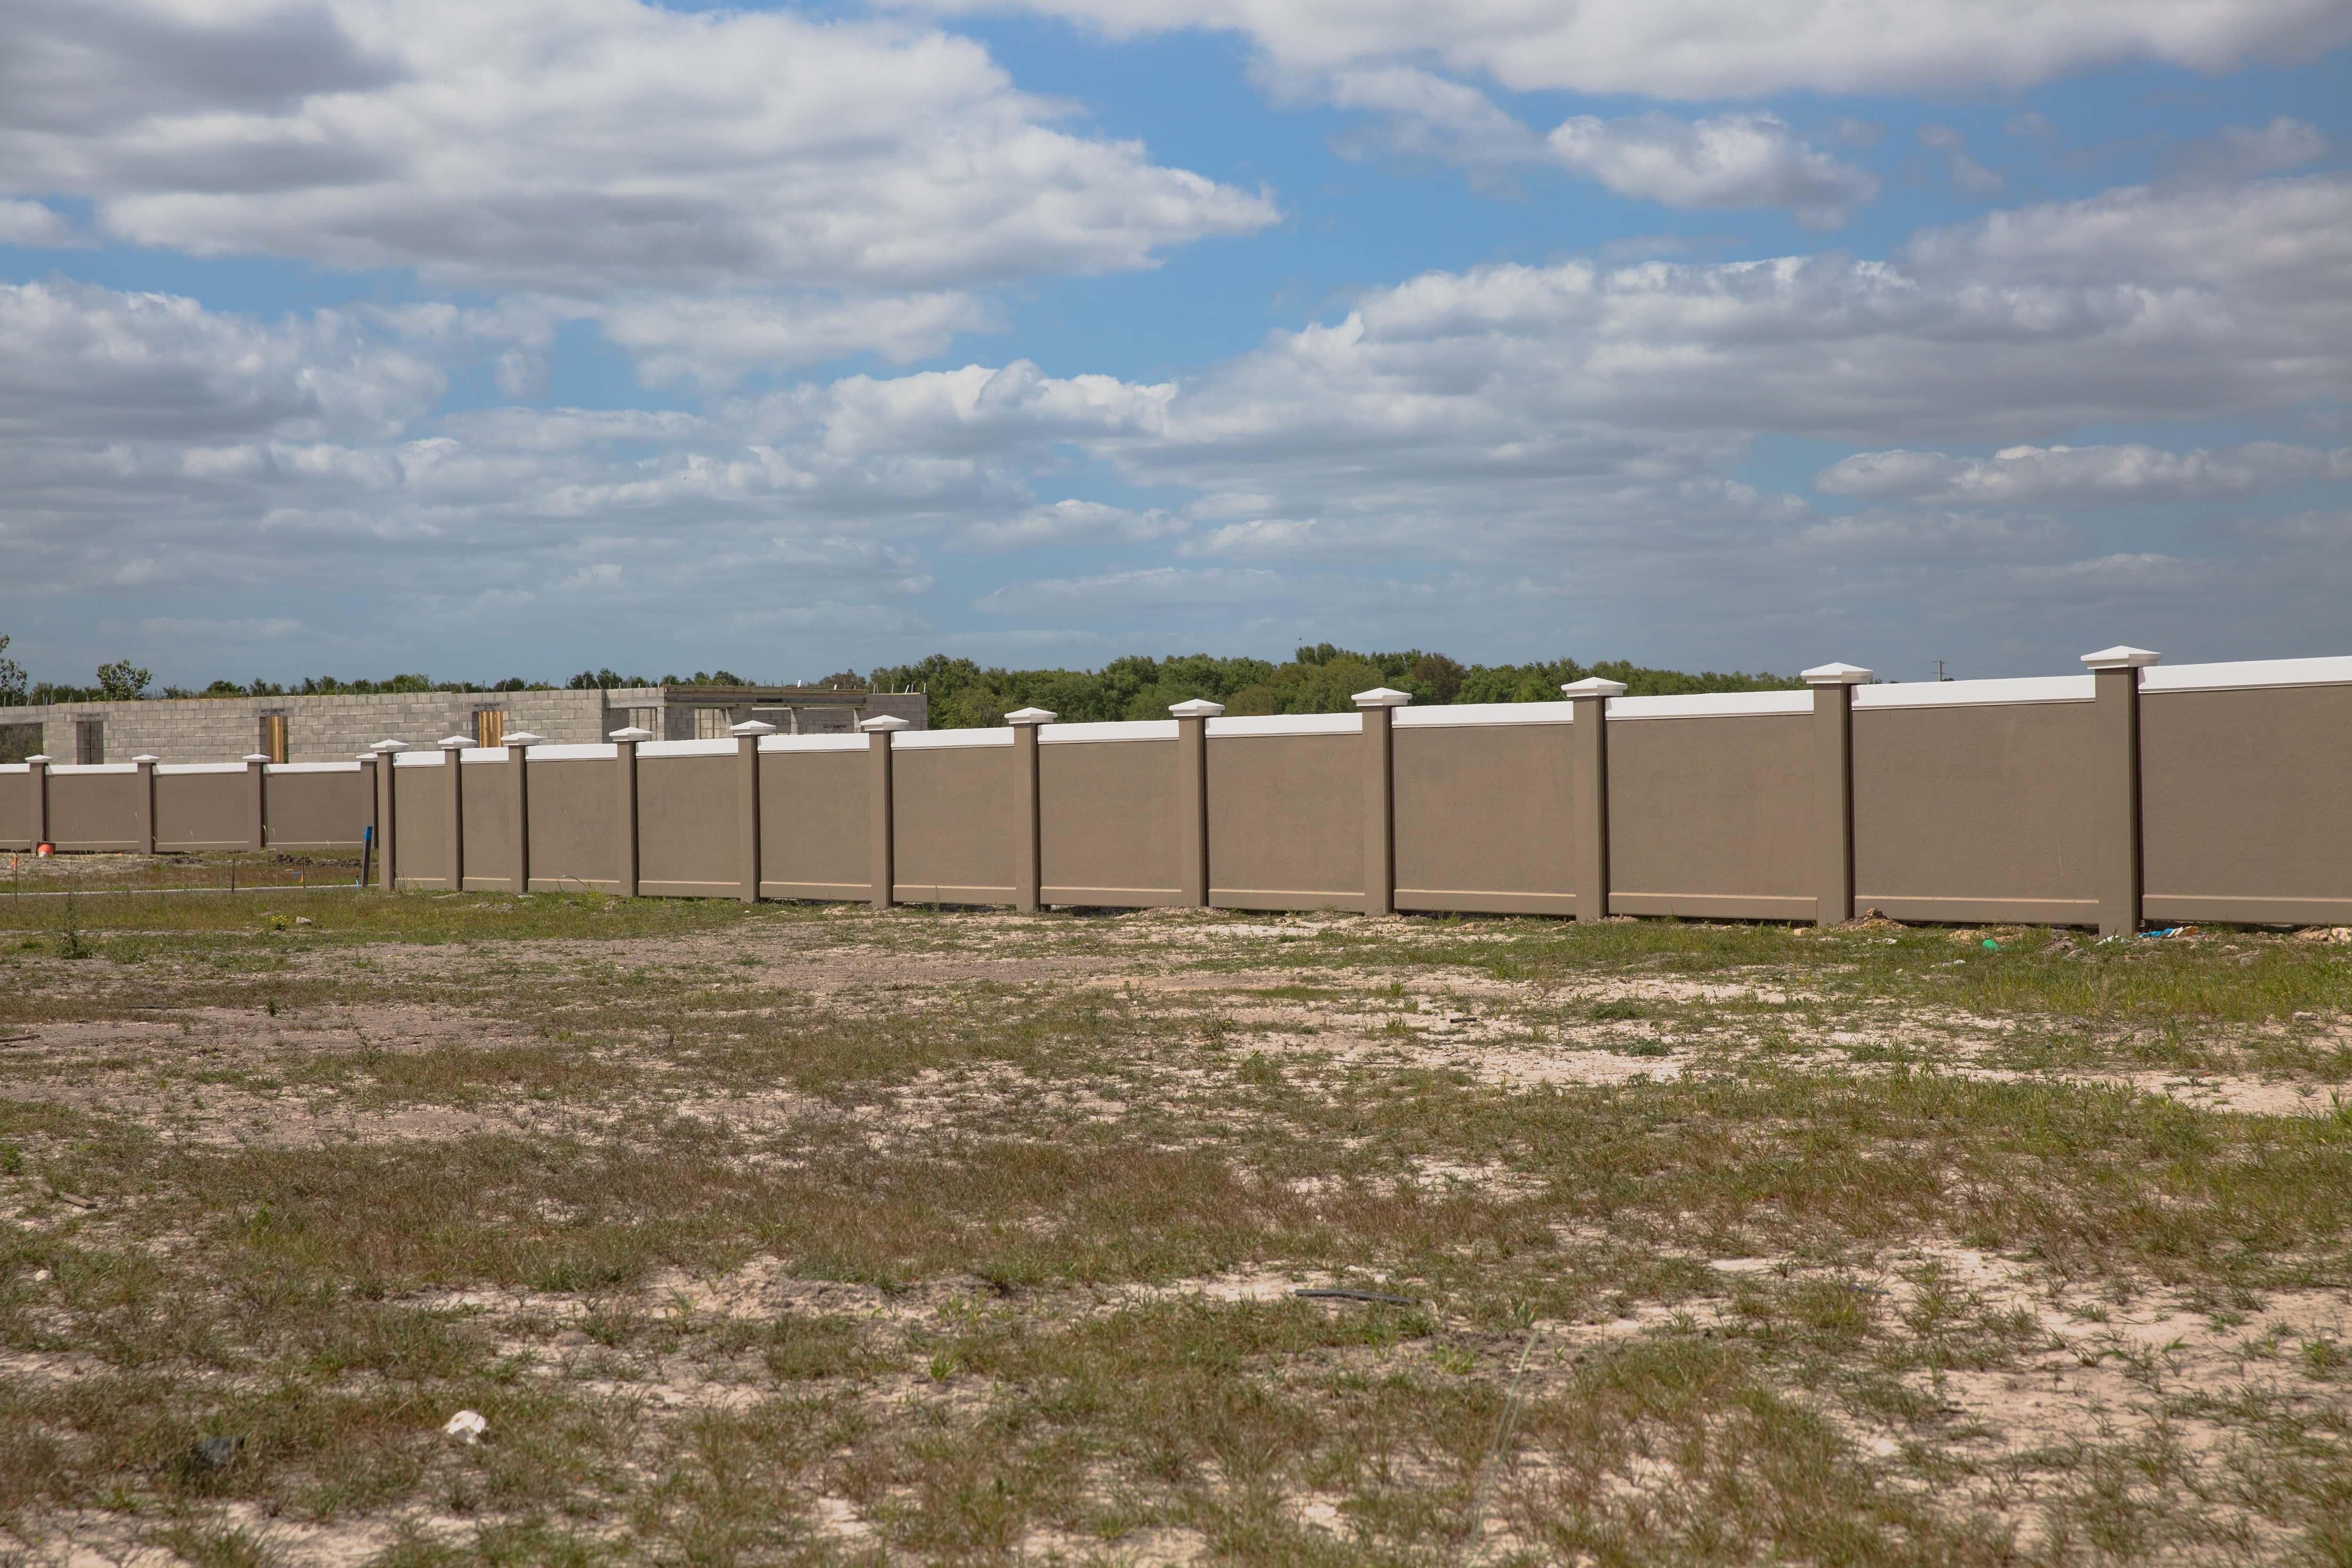 Permacast completed precast concrete fence